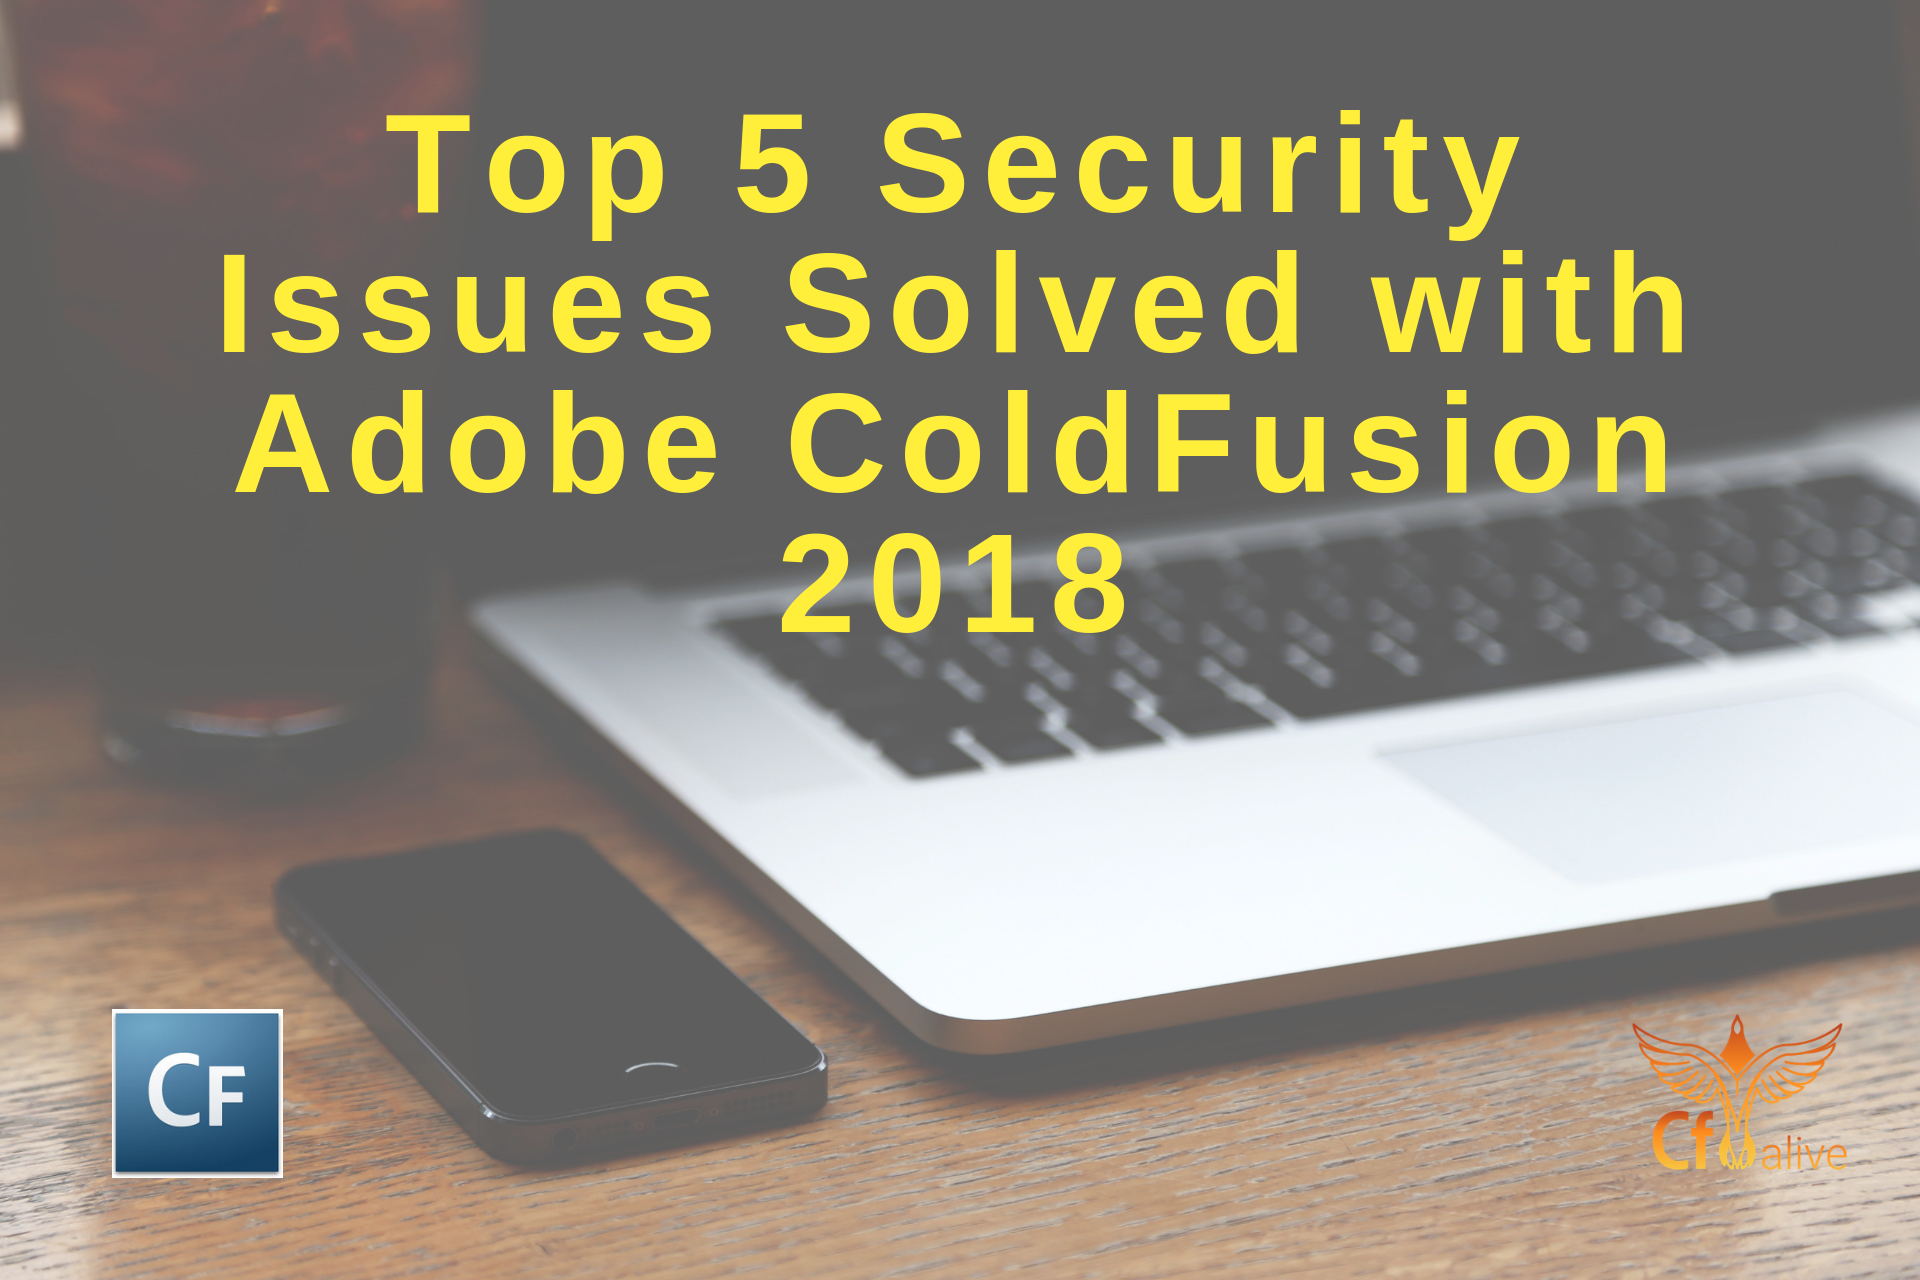 Top 5 Security Issues Solved with Adobe ColdFusion 2018